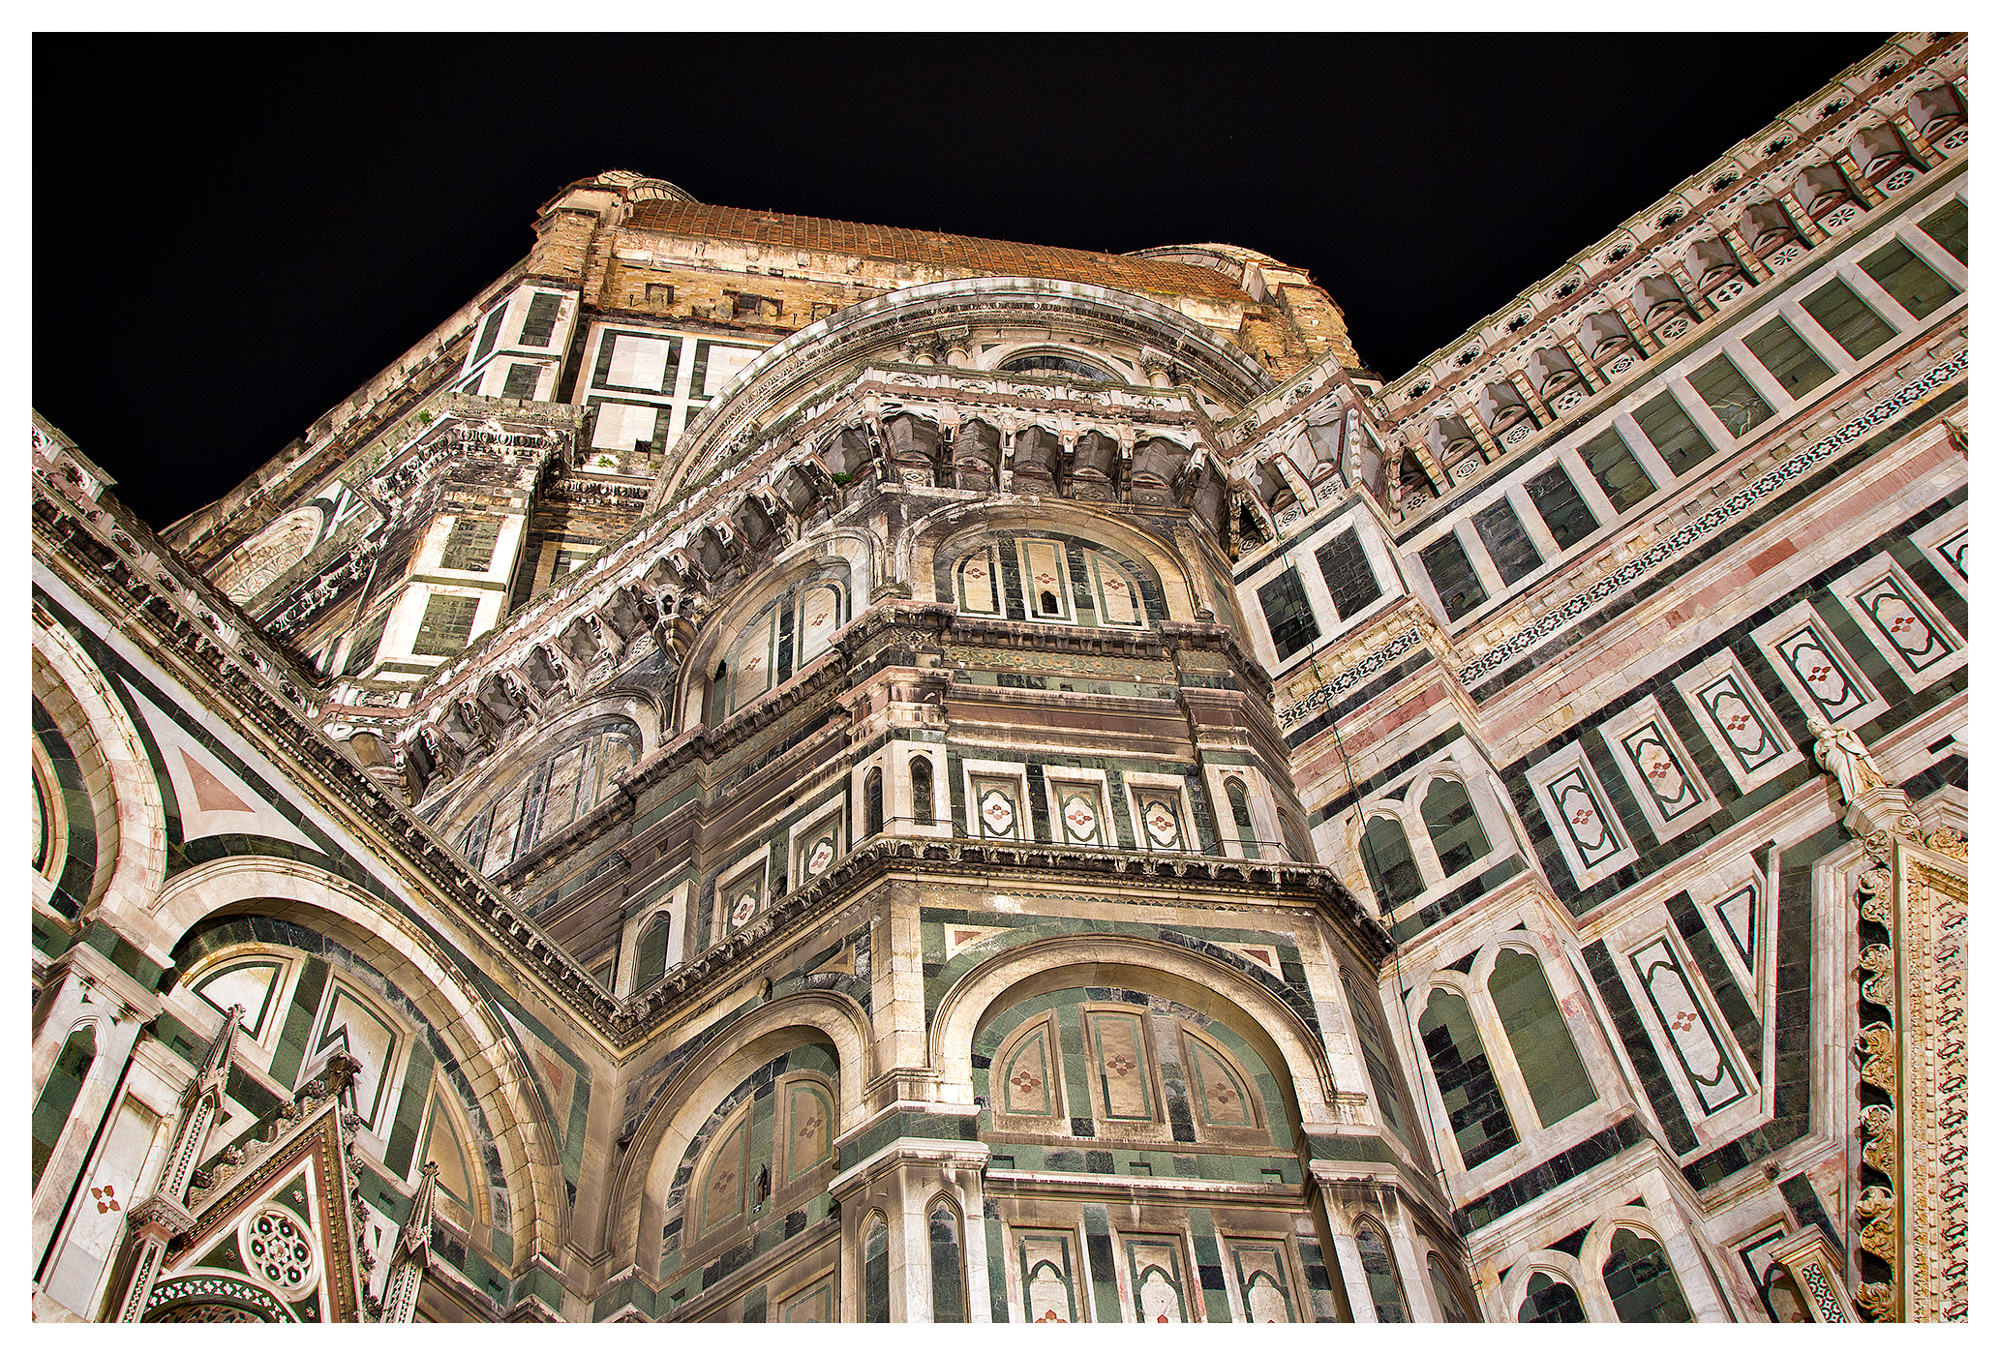 From Florence - part 2 - The Duomo